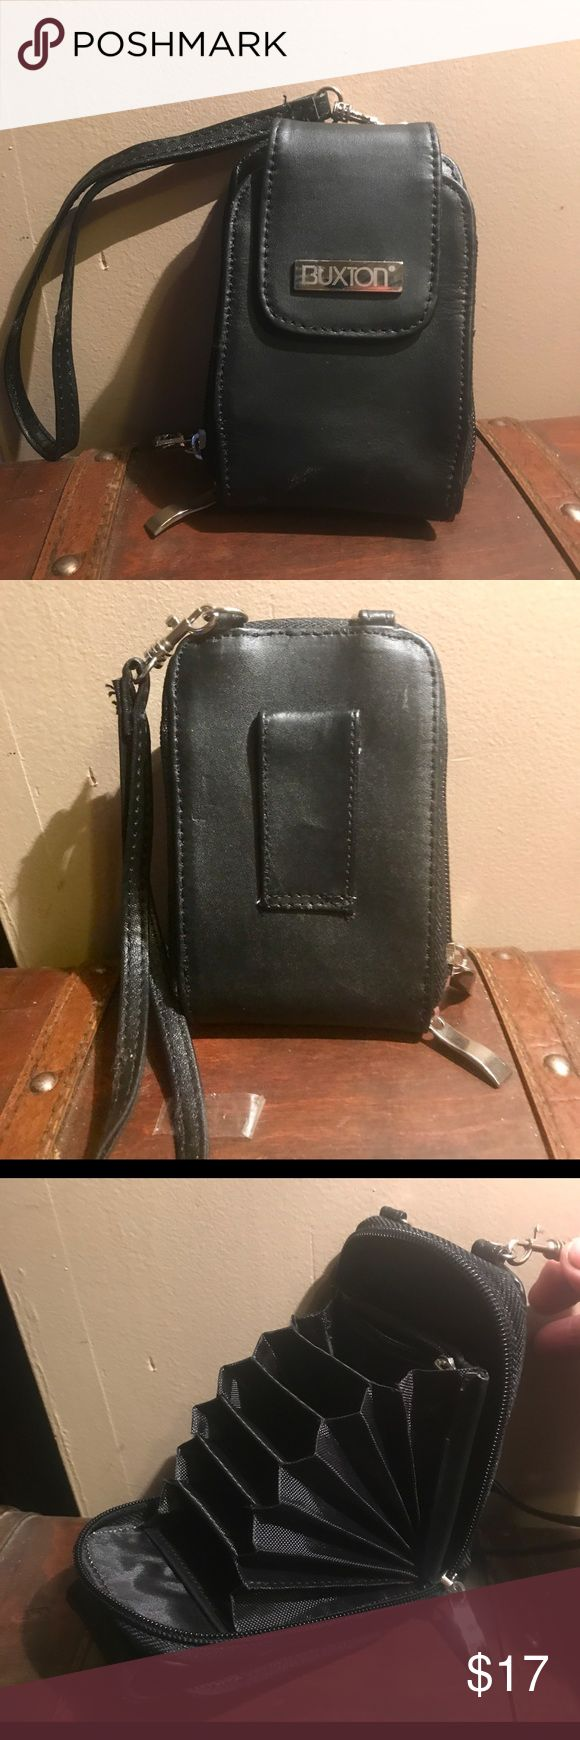 Buxton Leather Wallet/Wristlet Brand New Buxton Black Leather accordion style wallet to hold many cards, Zipper compartment and pouch on front side for larger items. Back has a belt loop if you want to wear on your waist or a looped strap to use as a Wristlet. Buxton Bags Wallets